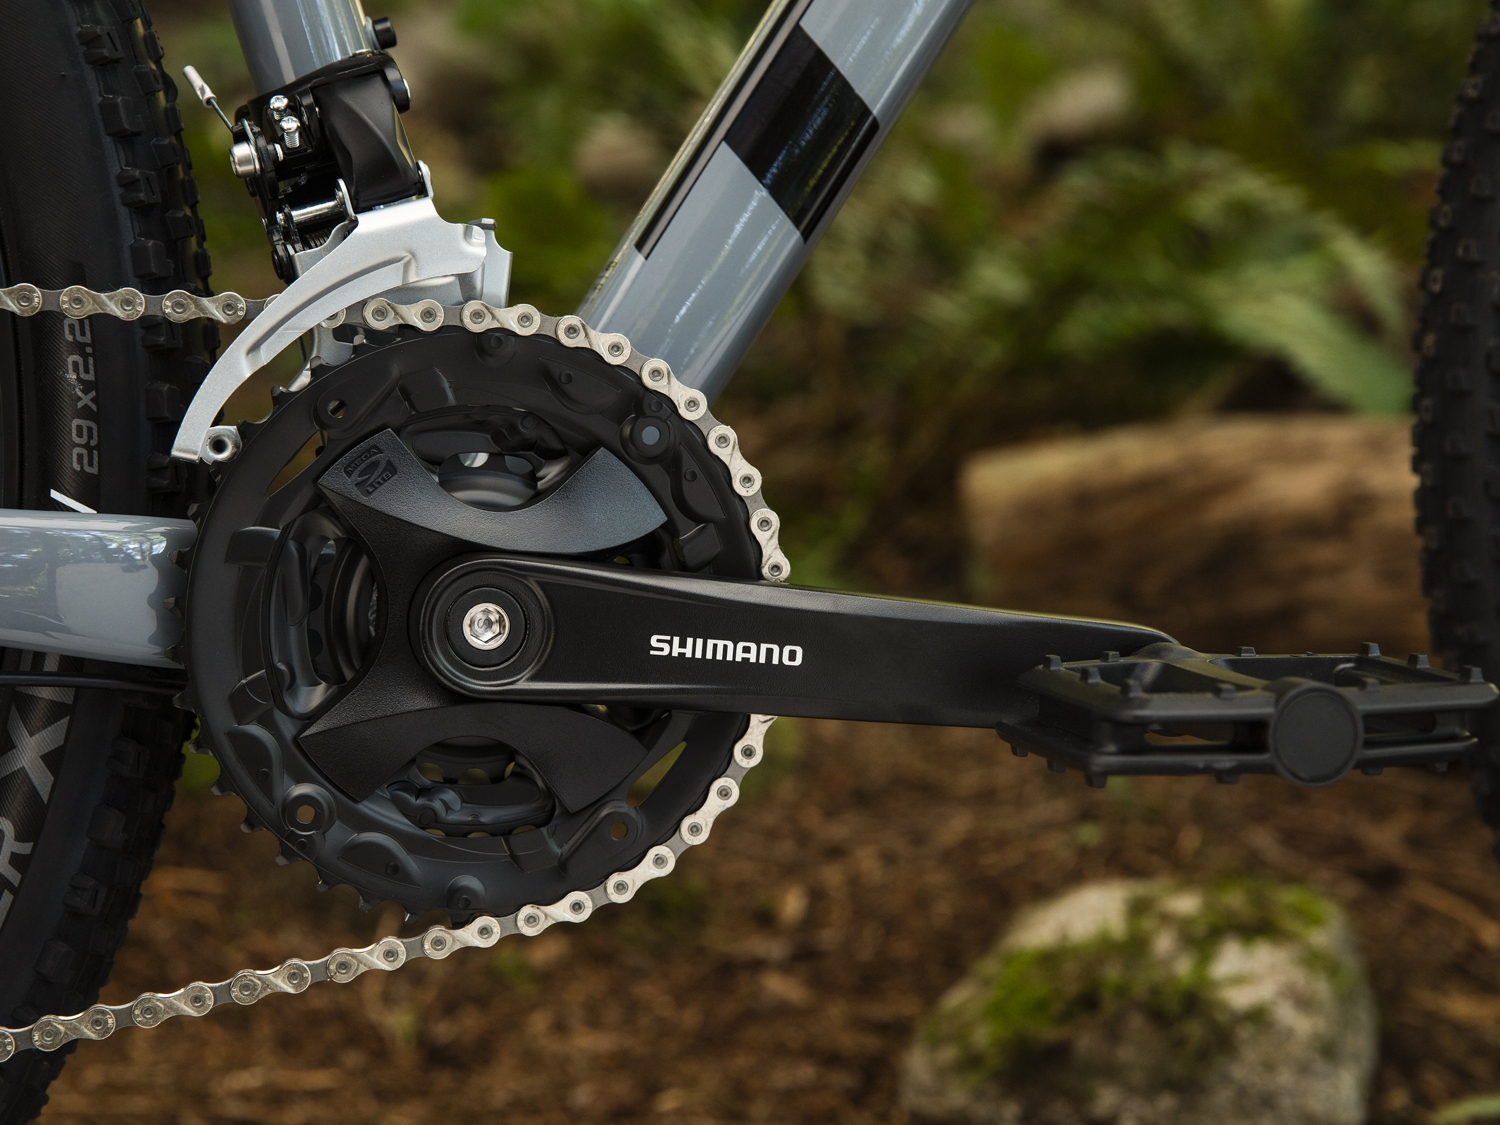 c6382a50c71 The 2019 Trek Marlin 7 is a lightweight aluminium mountain bike with  29-inch wheels, a Rockshox lockout fork with 100mm of travel and a 27-speed  drivetrain.